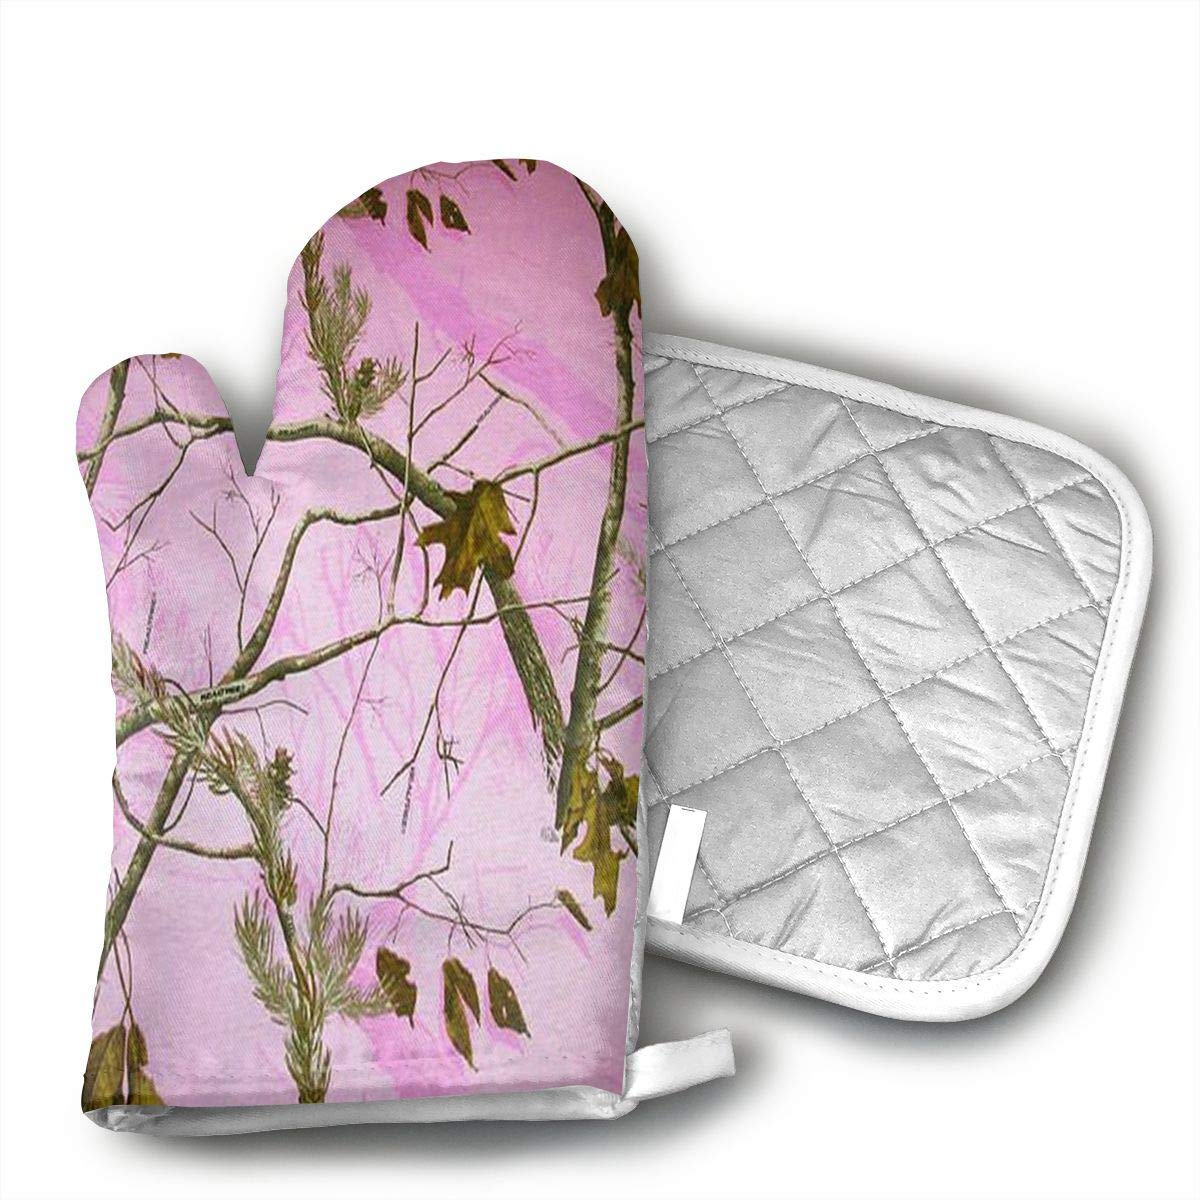 Mnsuh9 Pink Realtree Camo Oven Mitts Non-Slip for Home Kitchen Cooking Barbecue Microwave for Women/Men Machine Washable BBQ